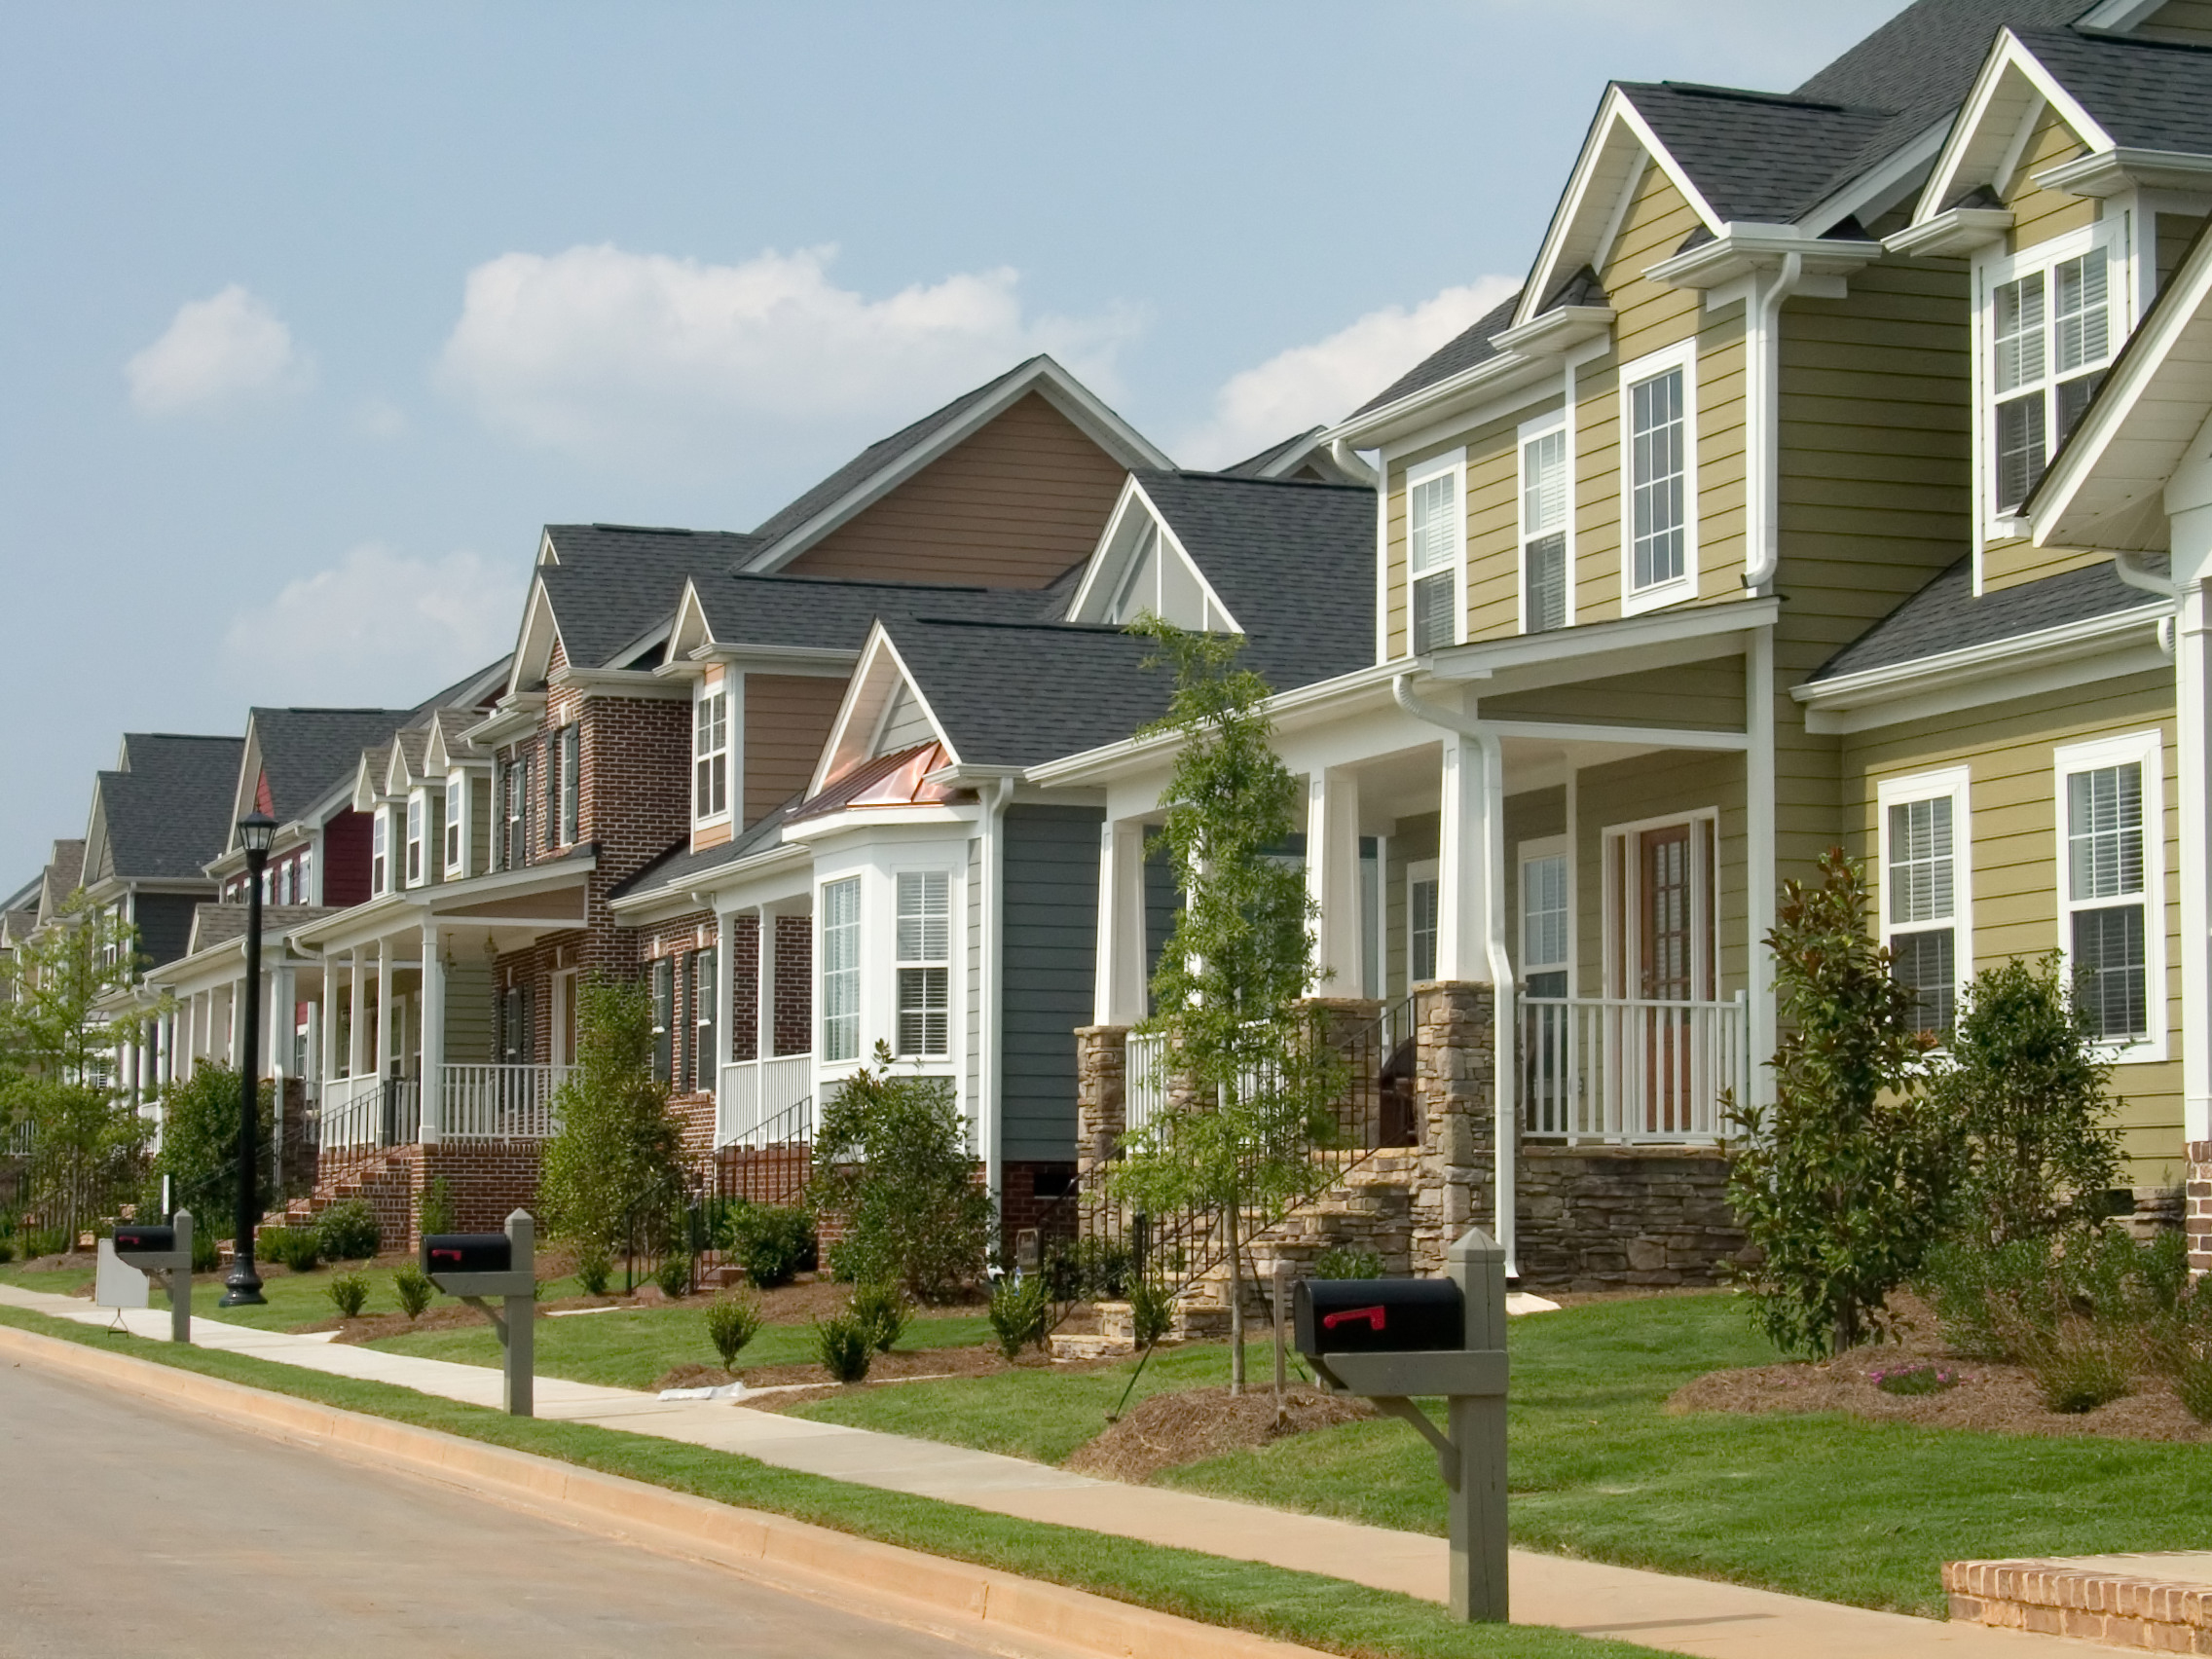 row-of-houses.jpg